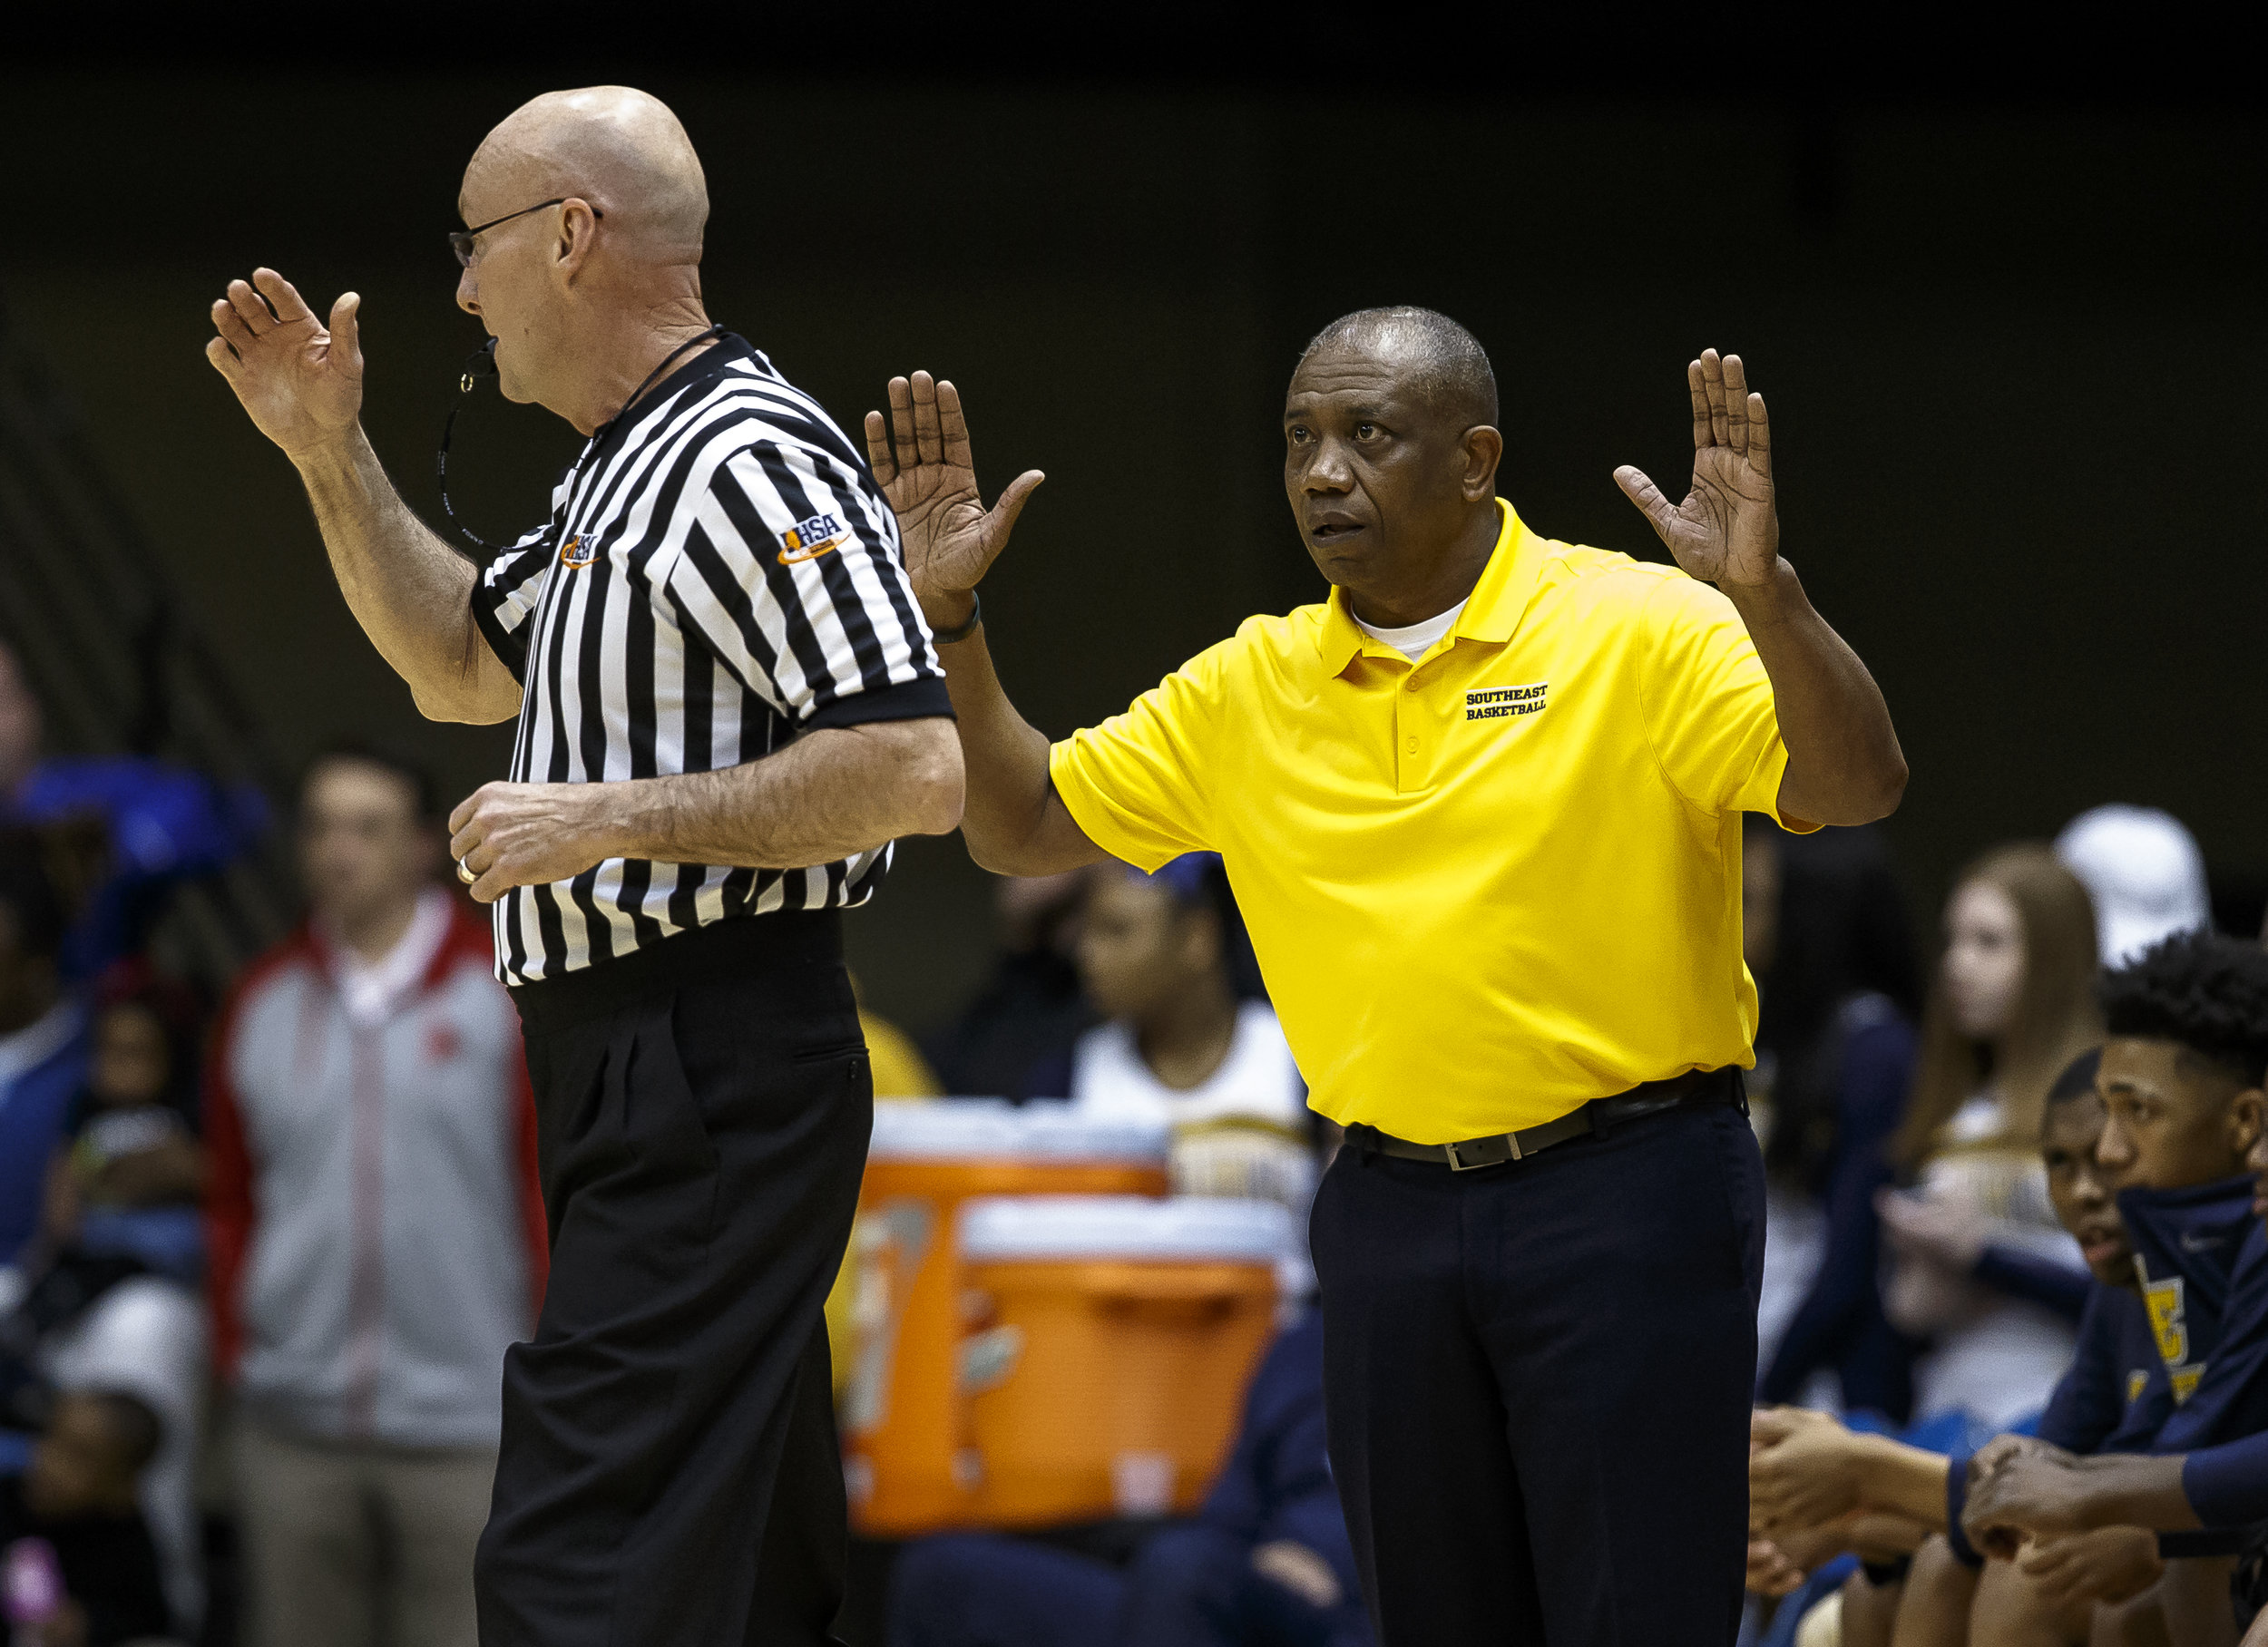 Southeast boys basketball head coach Lawrence Thomas argues against a foul call on the Spartans as they take on Marion in the first half during the Class 3A Springfield Supersectional at the Bank of Springfield Center, Tuesday, March 13, 2018, in Springfield, Ill. [Justin L. Fowler/The State Journal-Register]